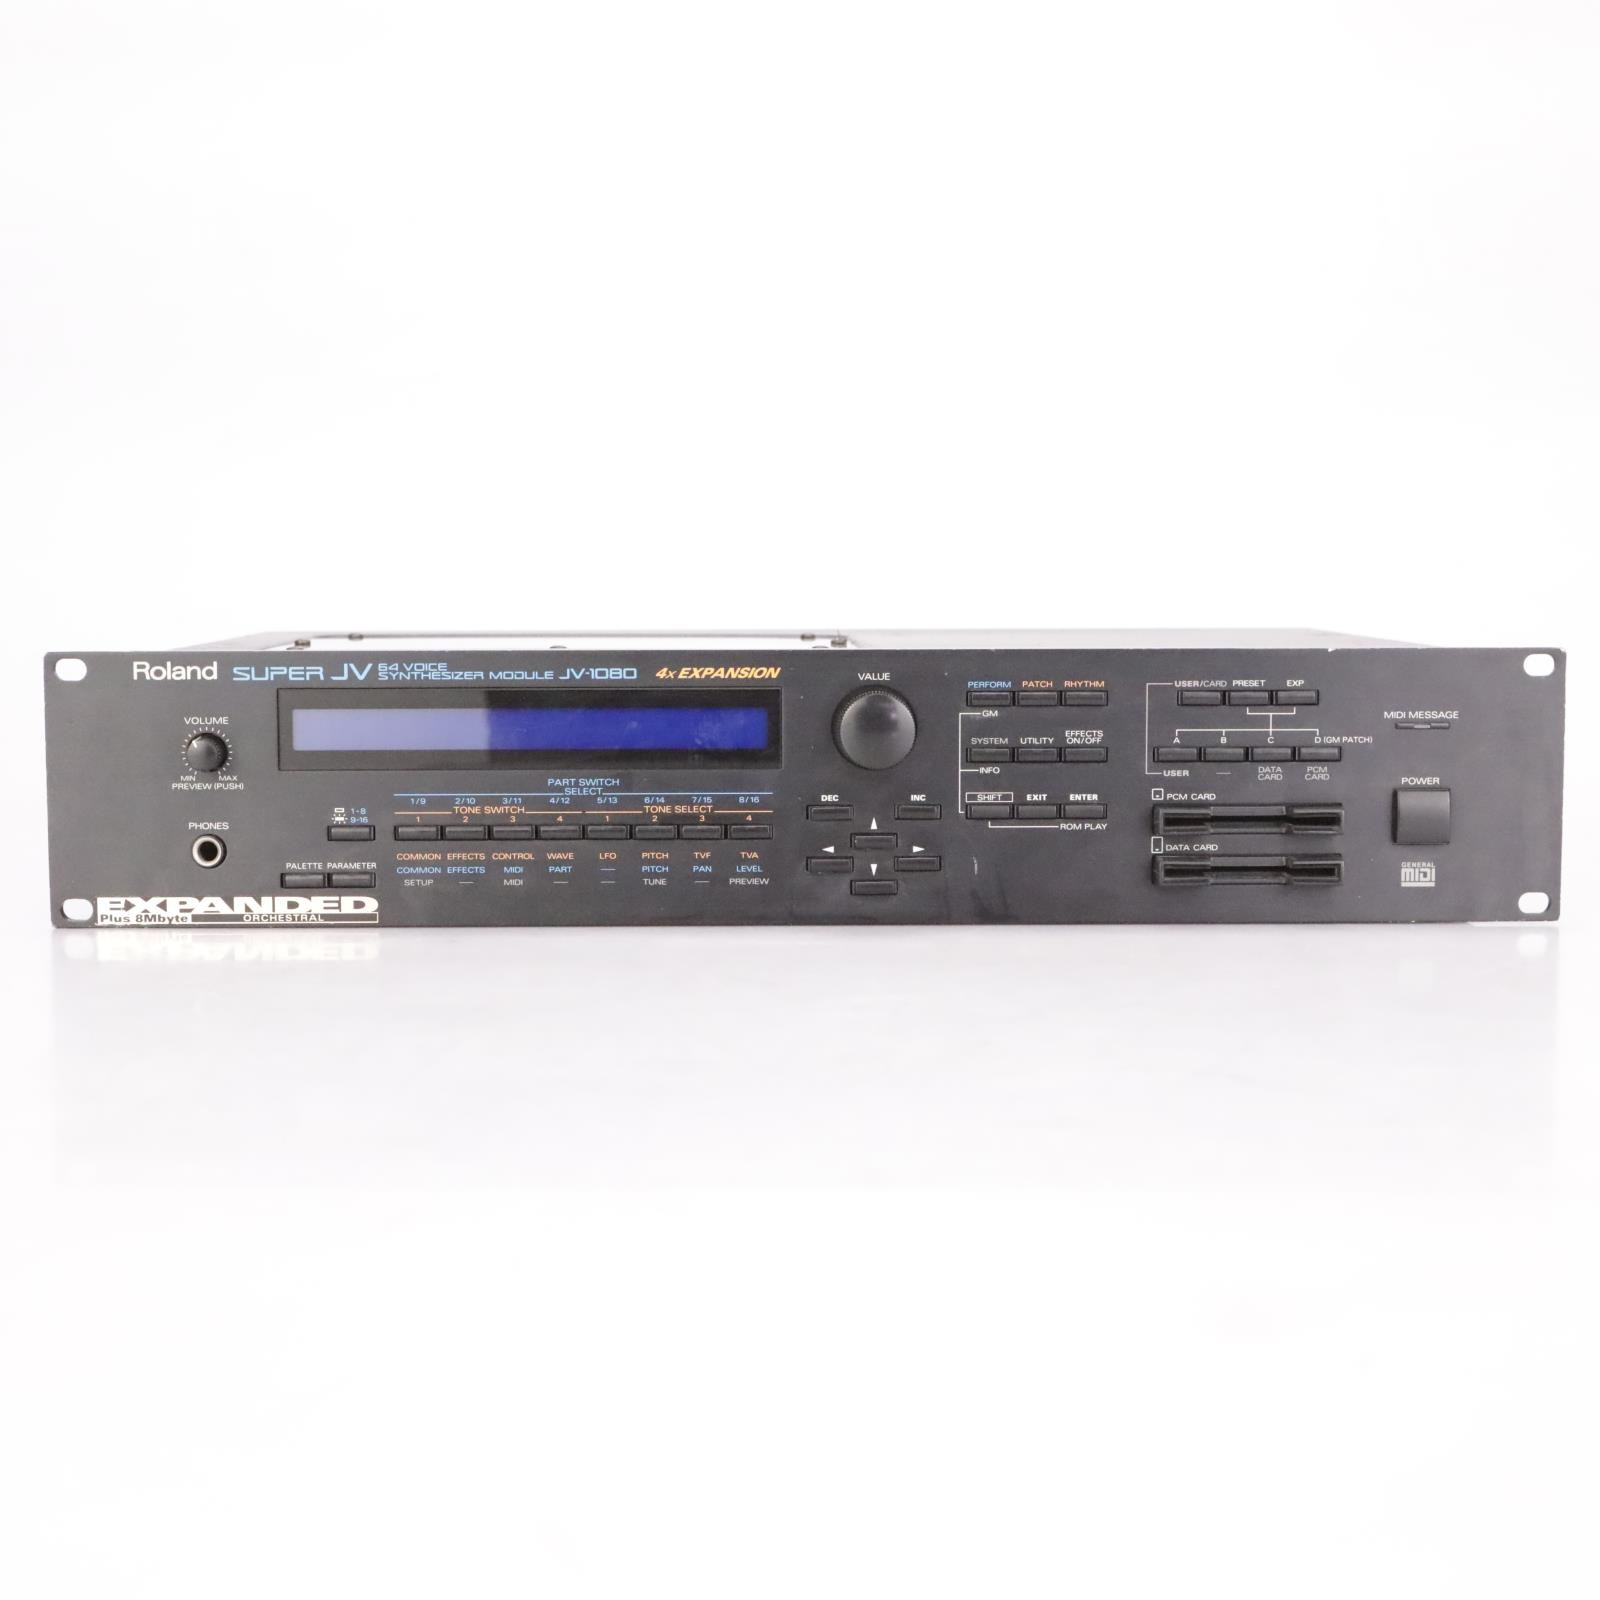 Roland Super JV JV-1080 64-Voice Synthesizer MIDI Sound Module 230V #37322